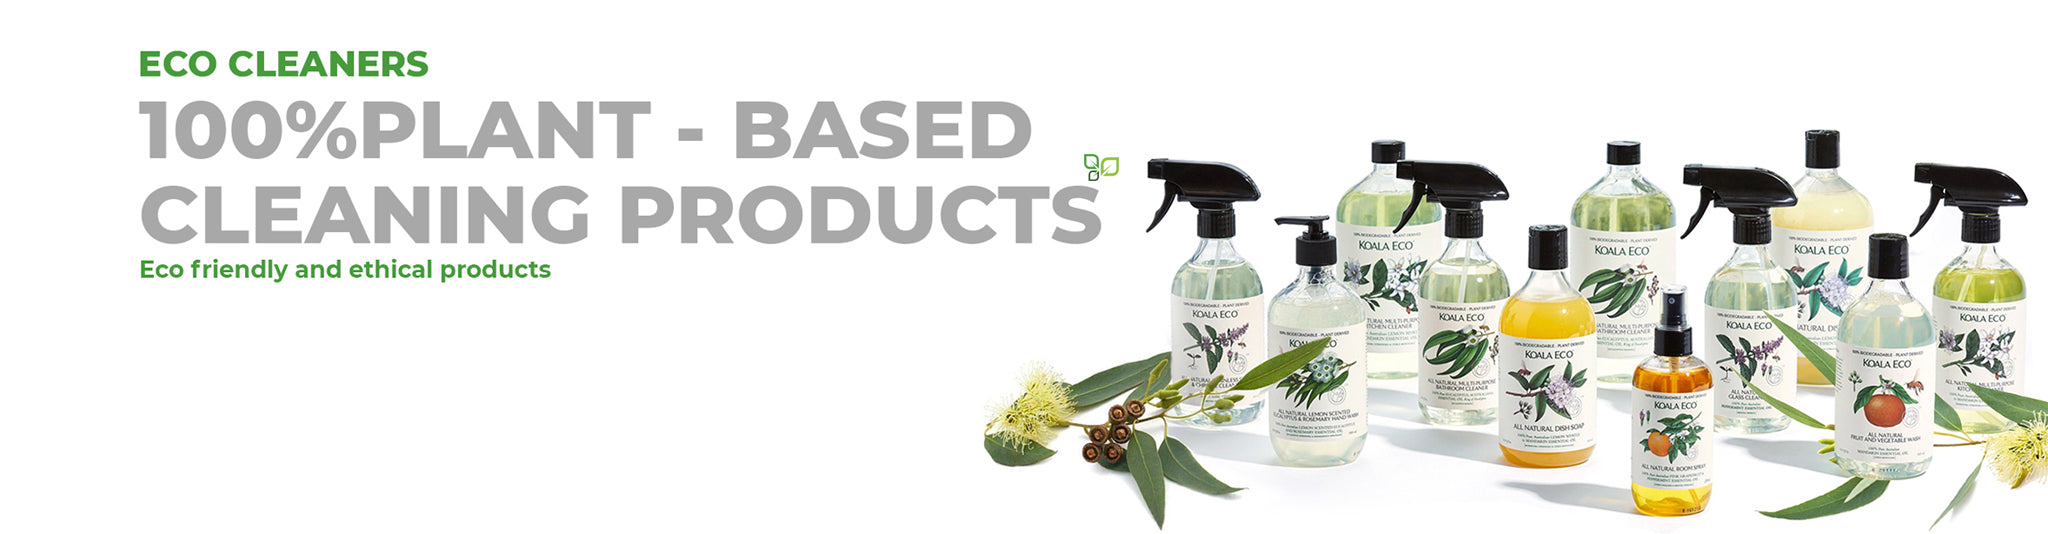 Koala Eco cleaning products